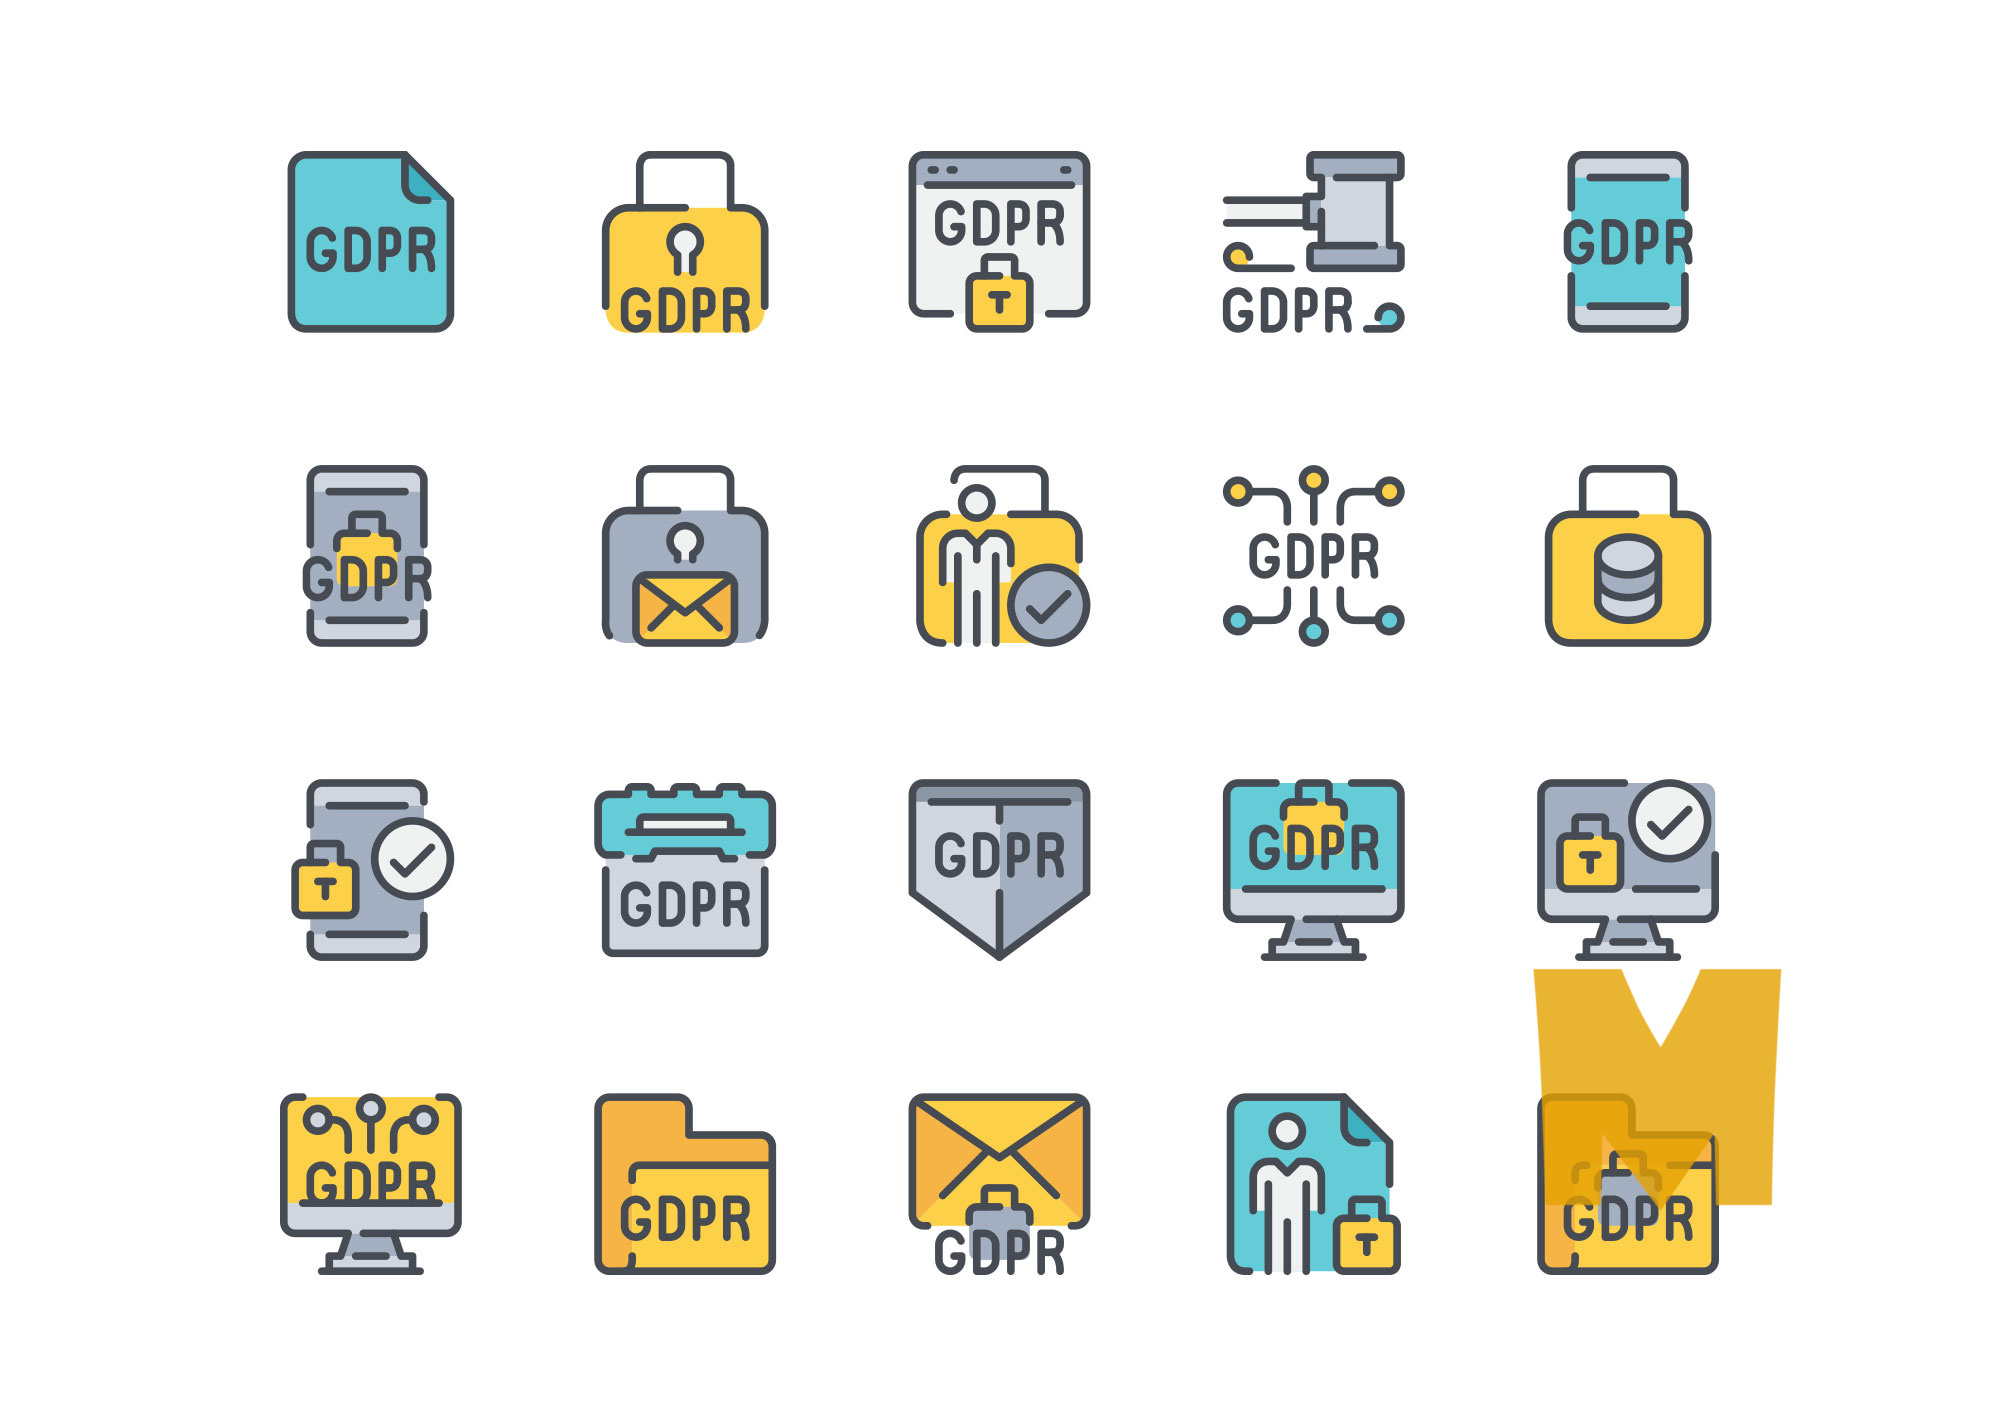 Vector GDPR Icon Design Set